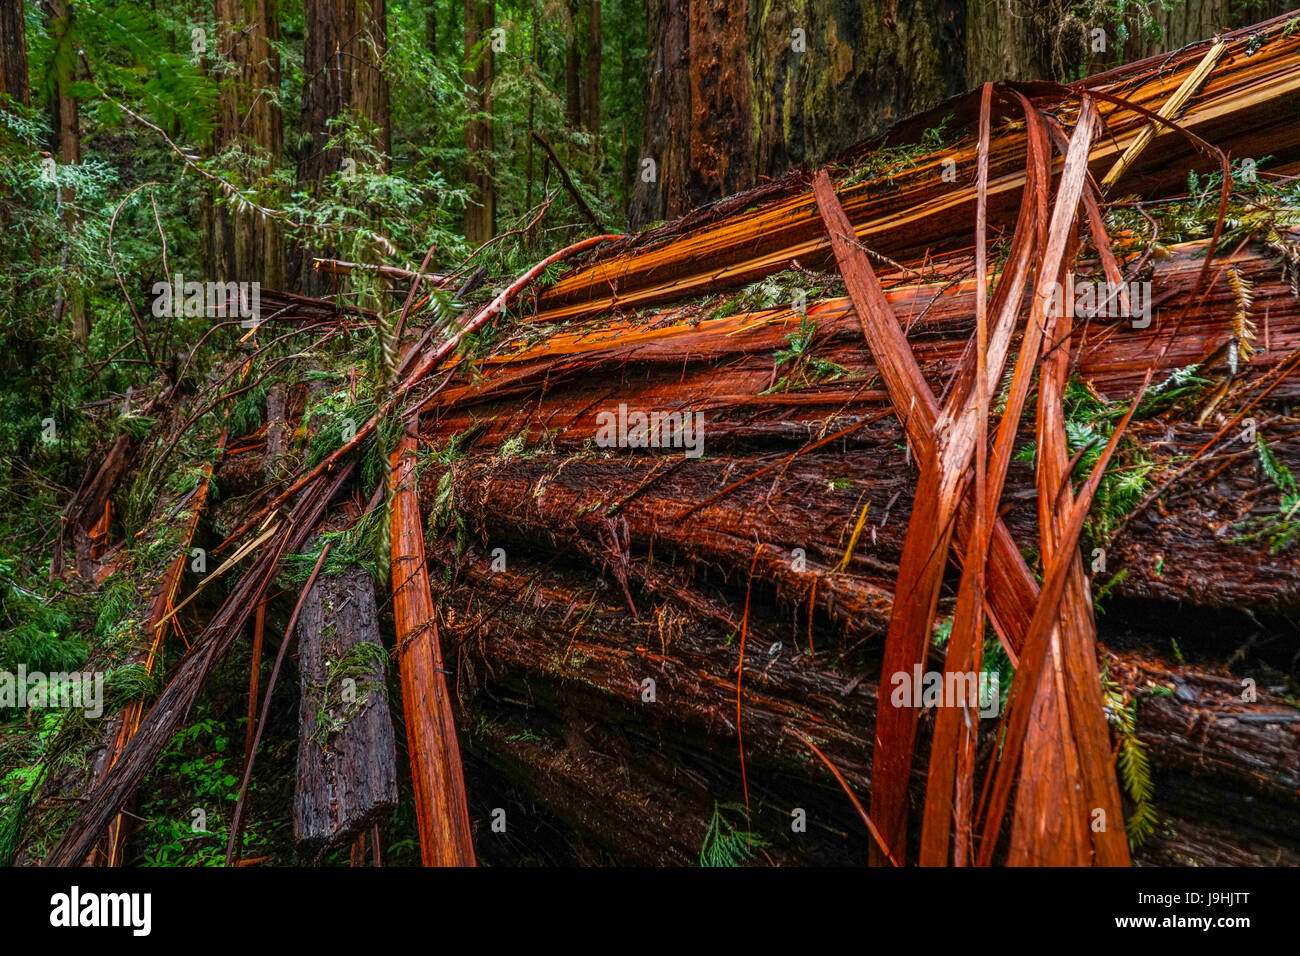 The Giant red Cedar trees at Redwoods National Park - Stock Image